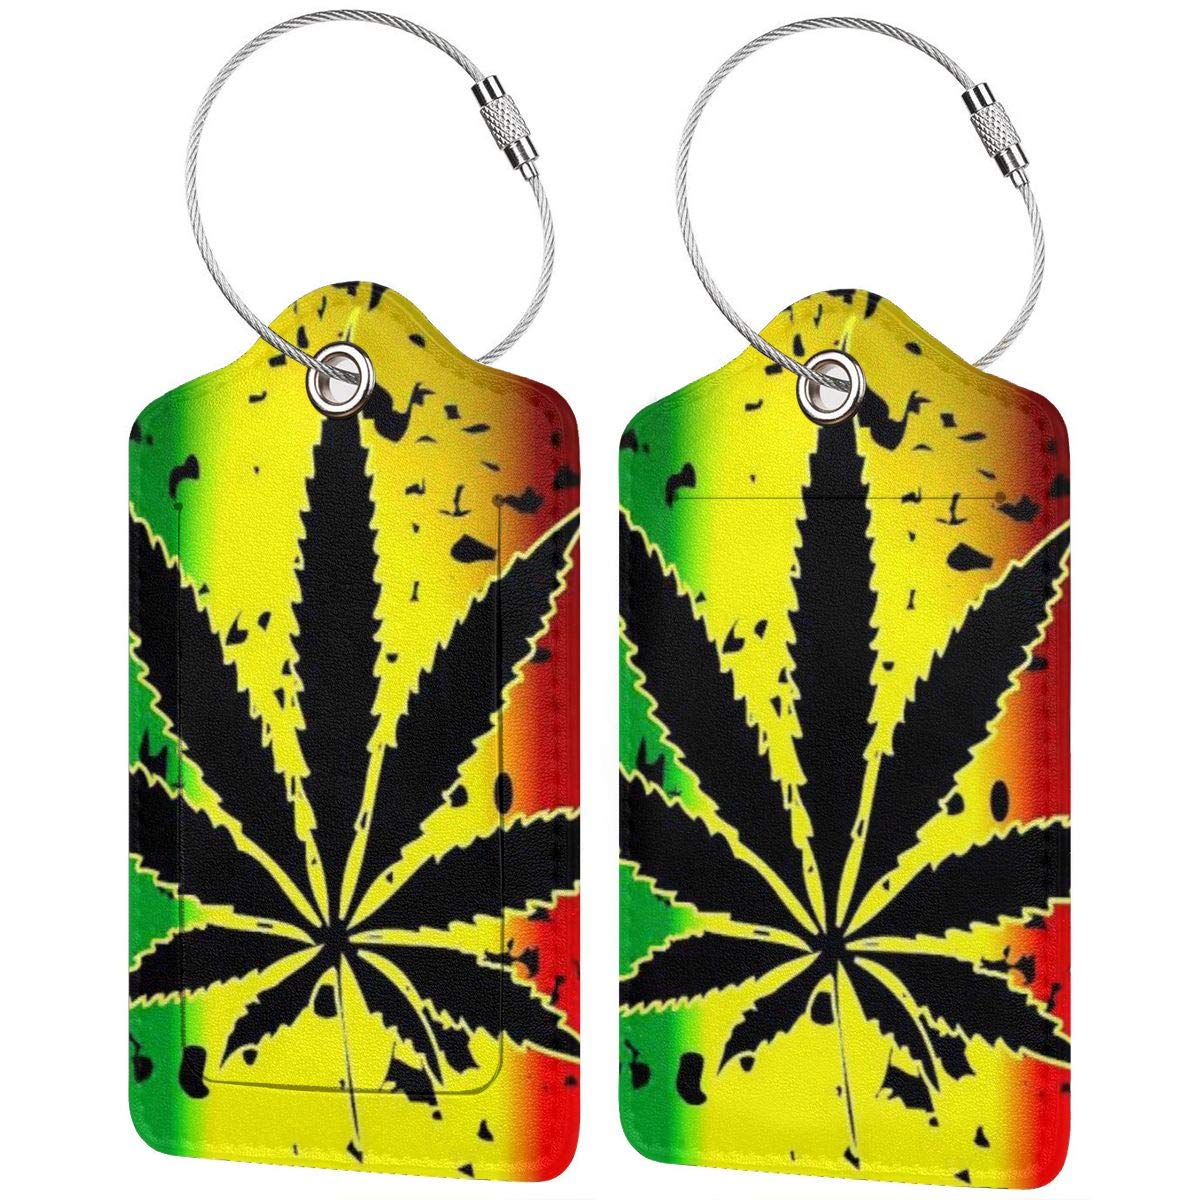 Luggage Tags PU Leather Suitcase Card Tag With Stainless Steel Loop Travel Baggage Handbag Tag Labels Travel Accessories Marijuana Weed Cannabis Pot Leaf Plant set of 4